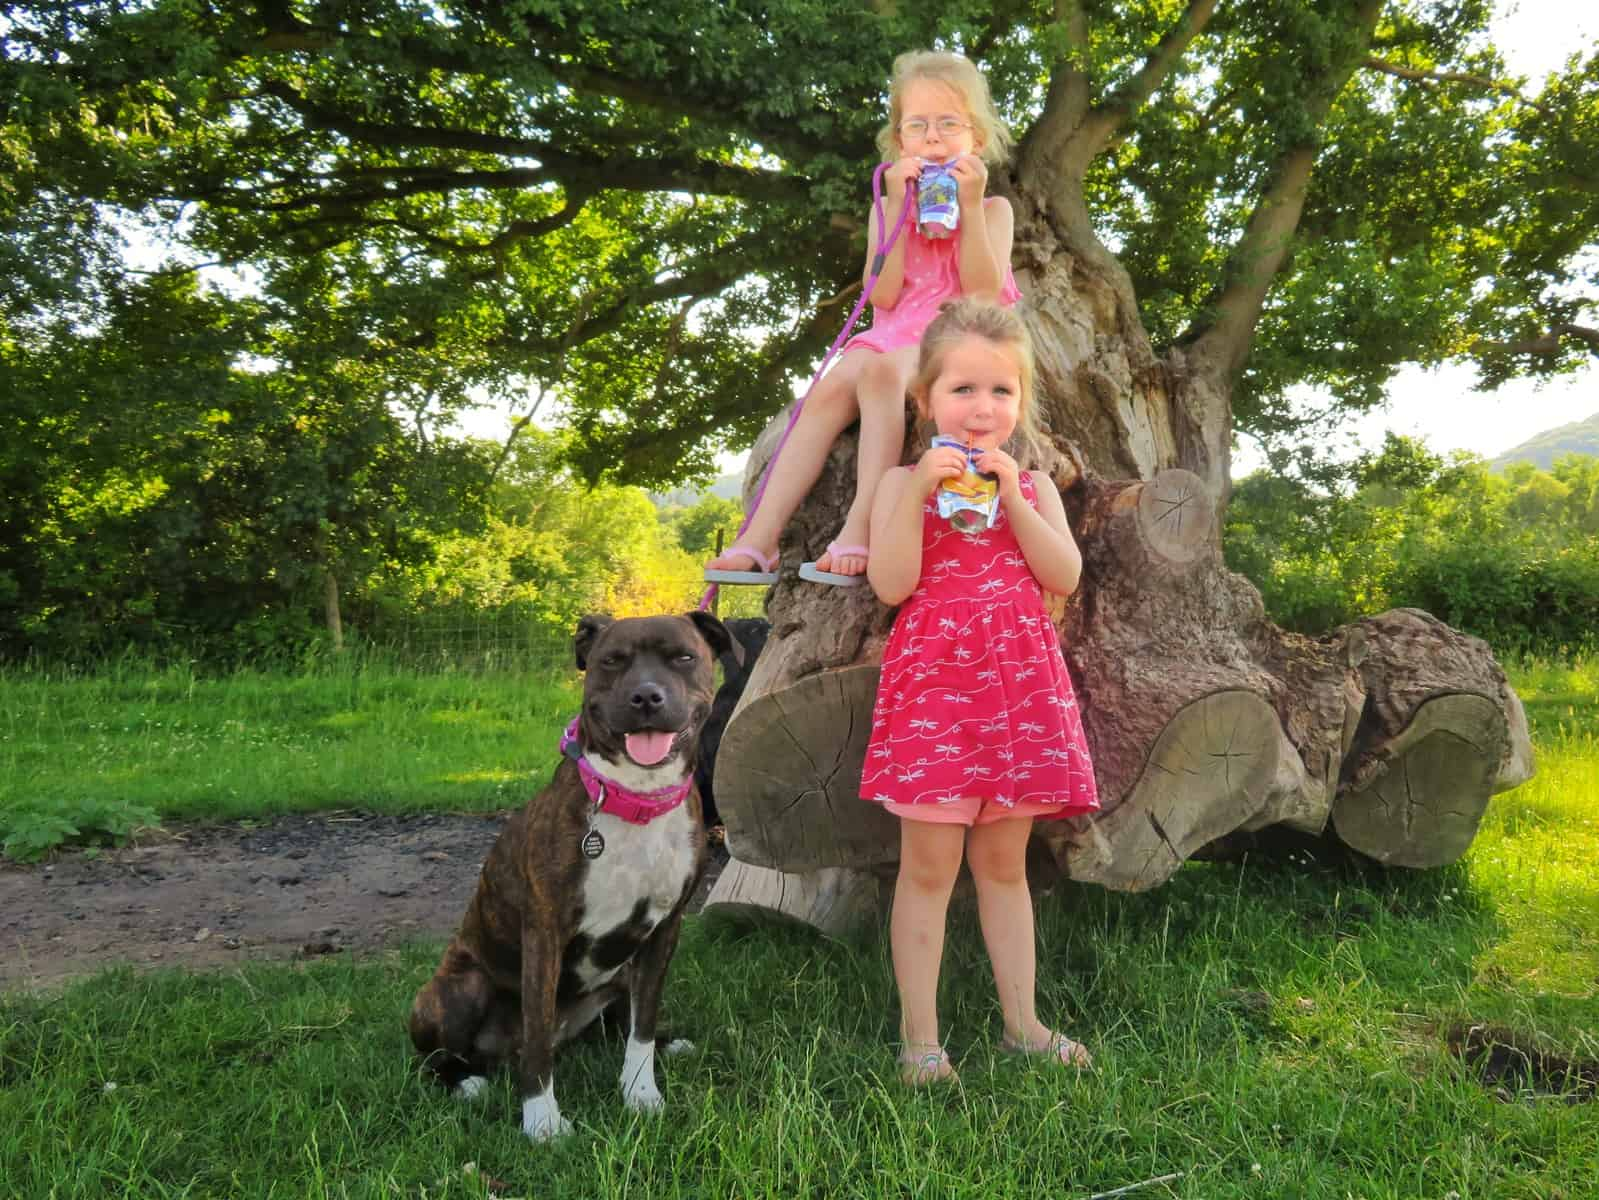 Girl sat on a log with her sister stood in front of her and a dog on the lead beside them, all smiling including the dog - girls drinking Capri-Sun